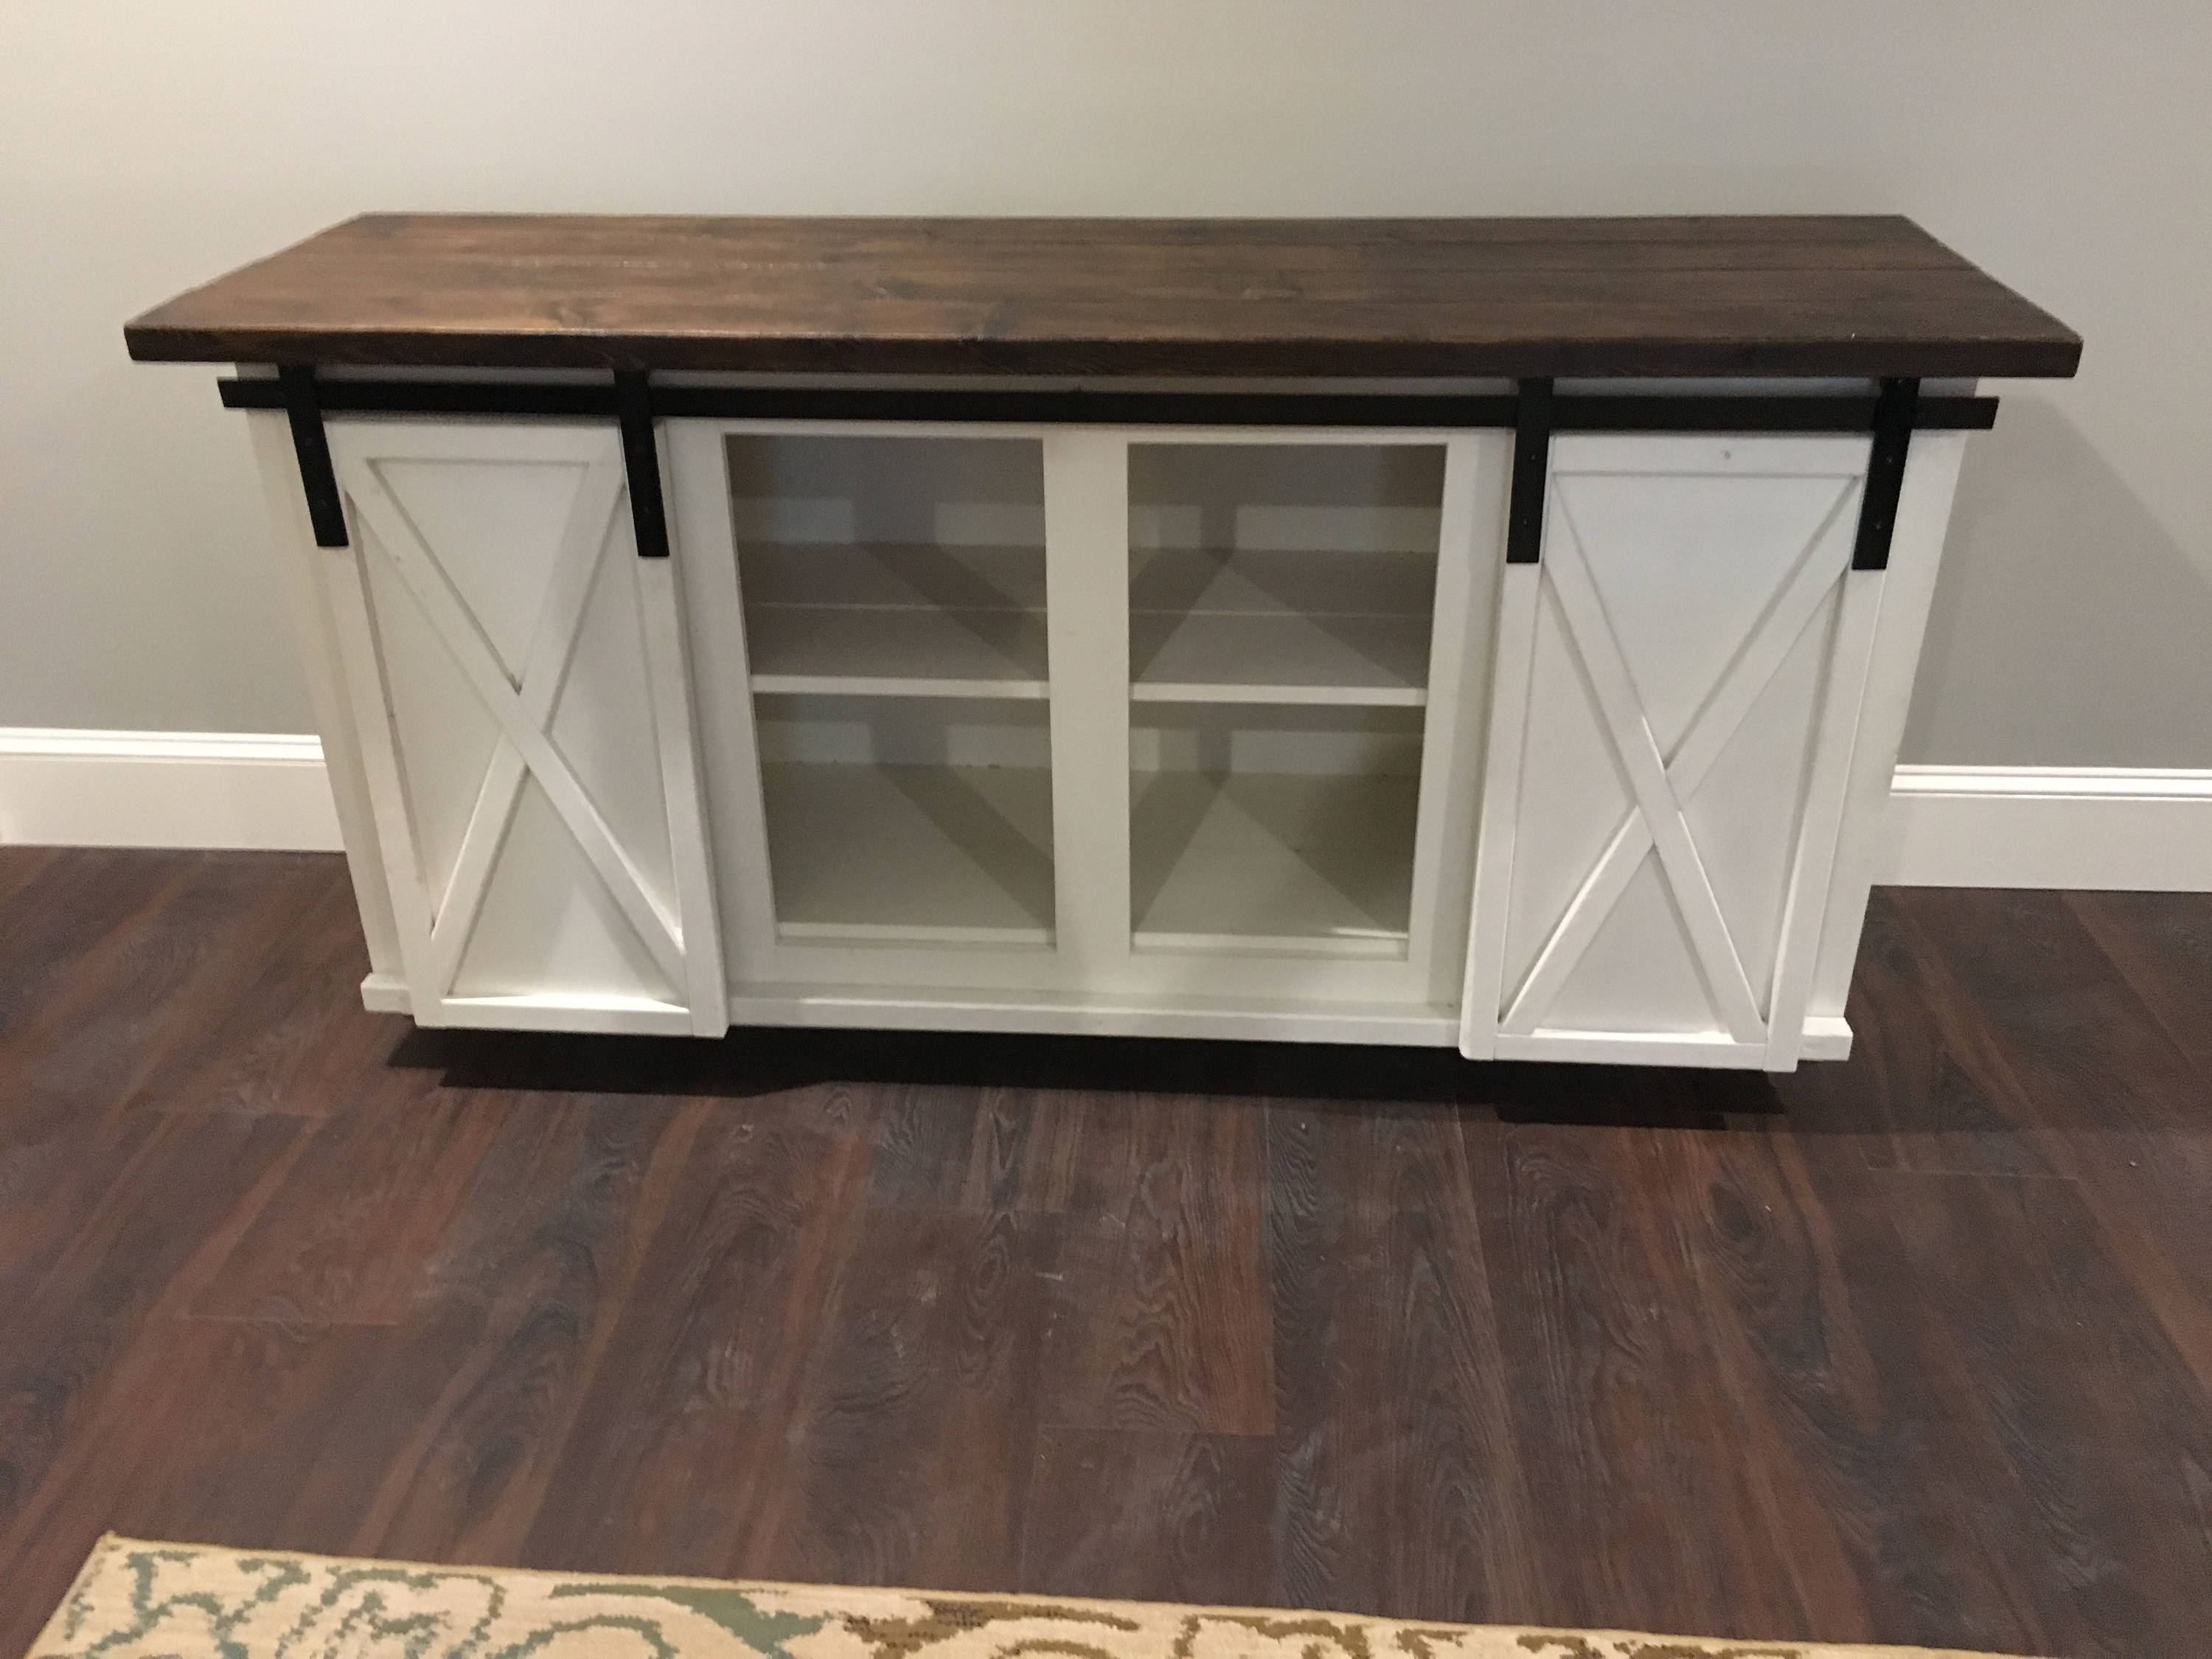 custom sliding barn door bar cabinet etsy fullxfull accent table with ashley furniture leather recliners design white and black side allen for drawing room small rattan metal